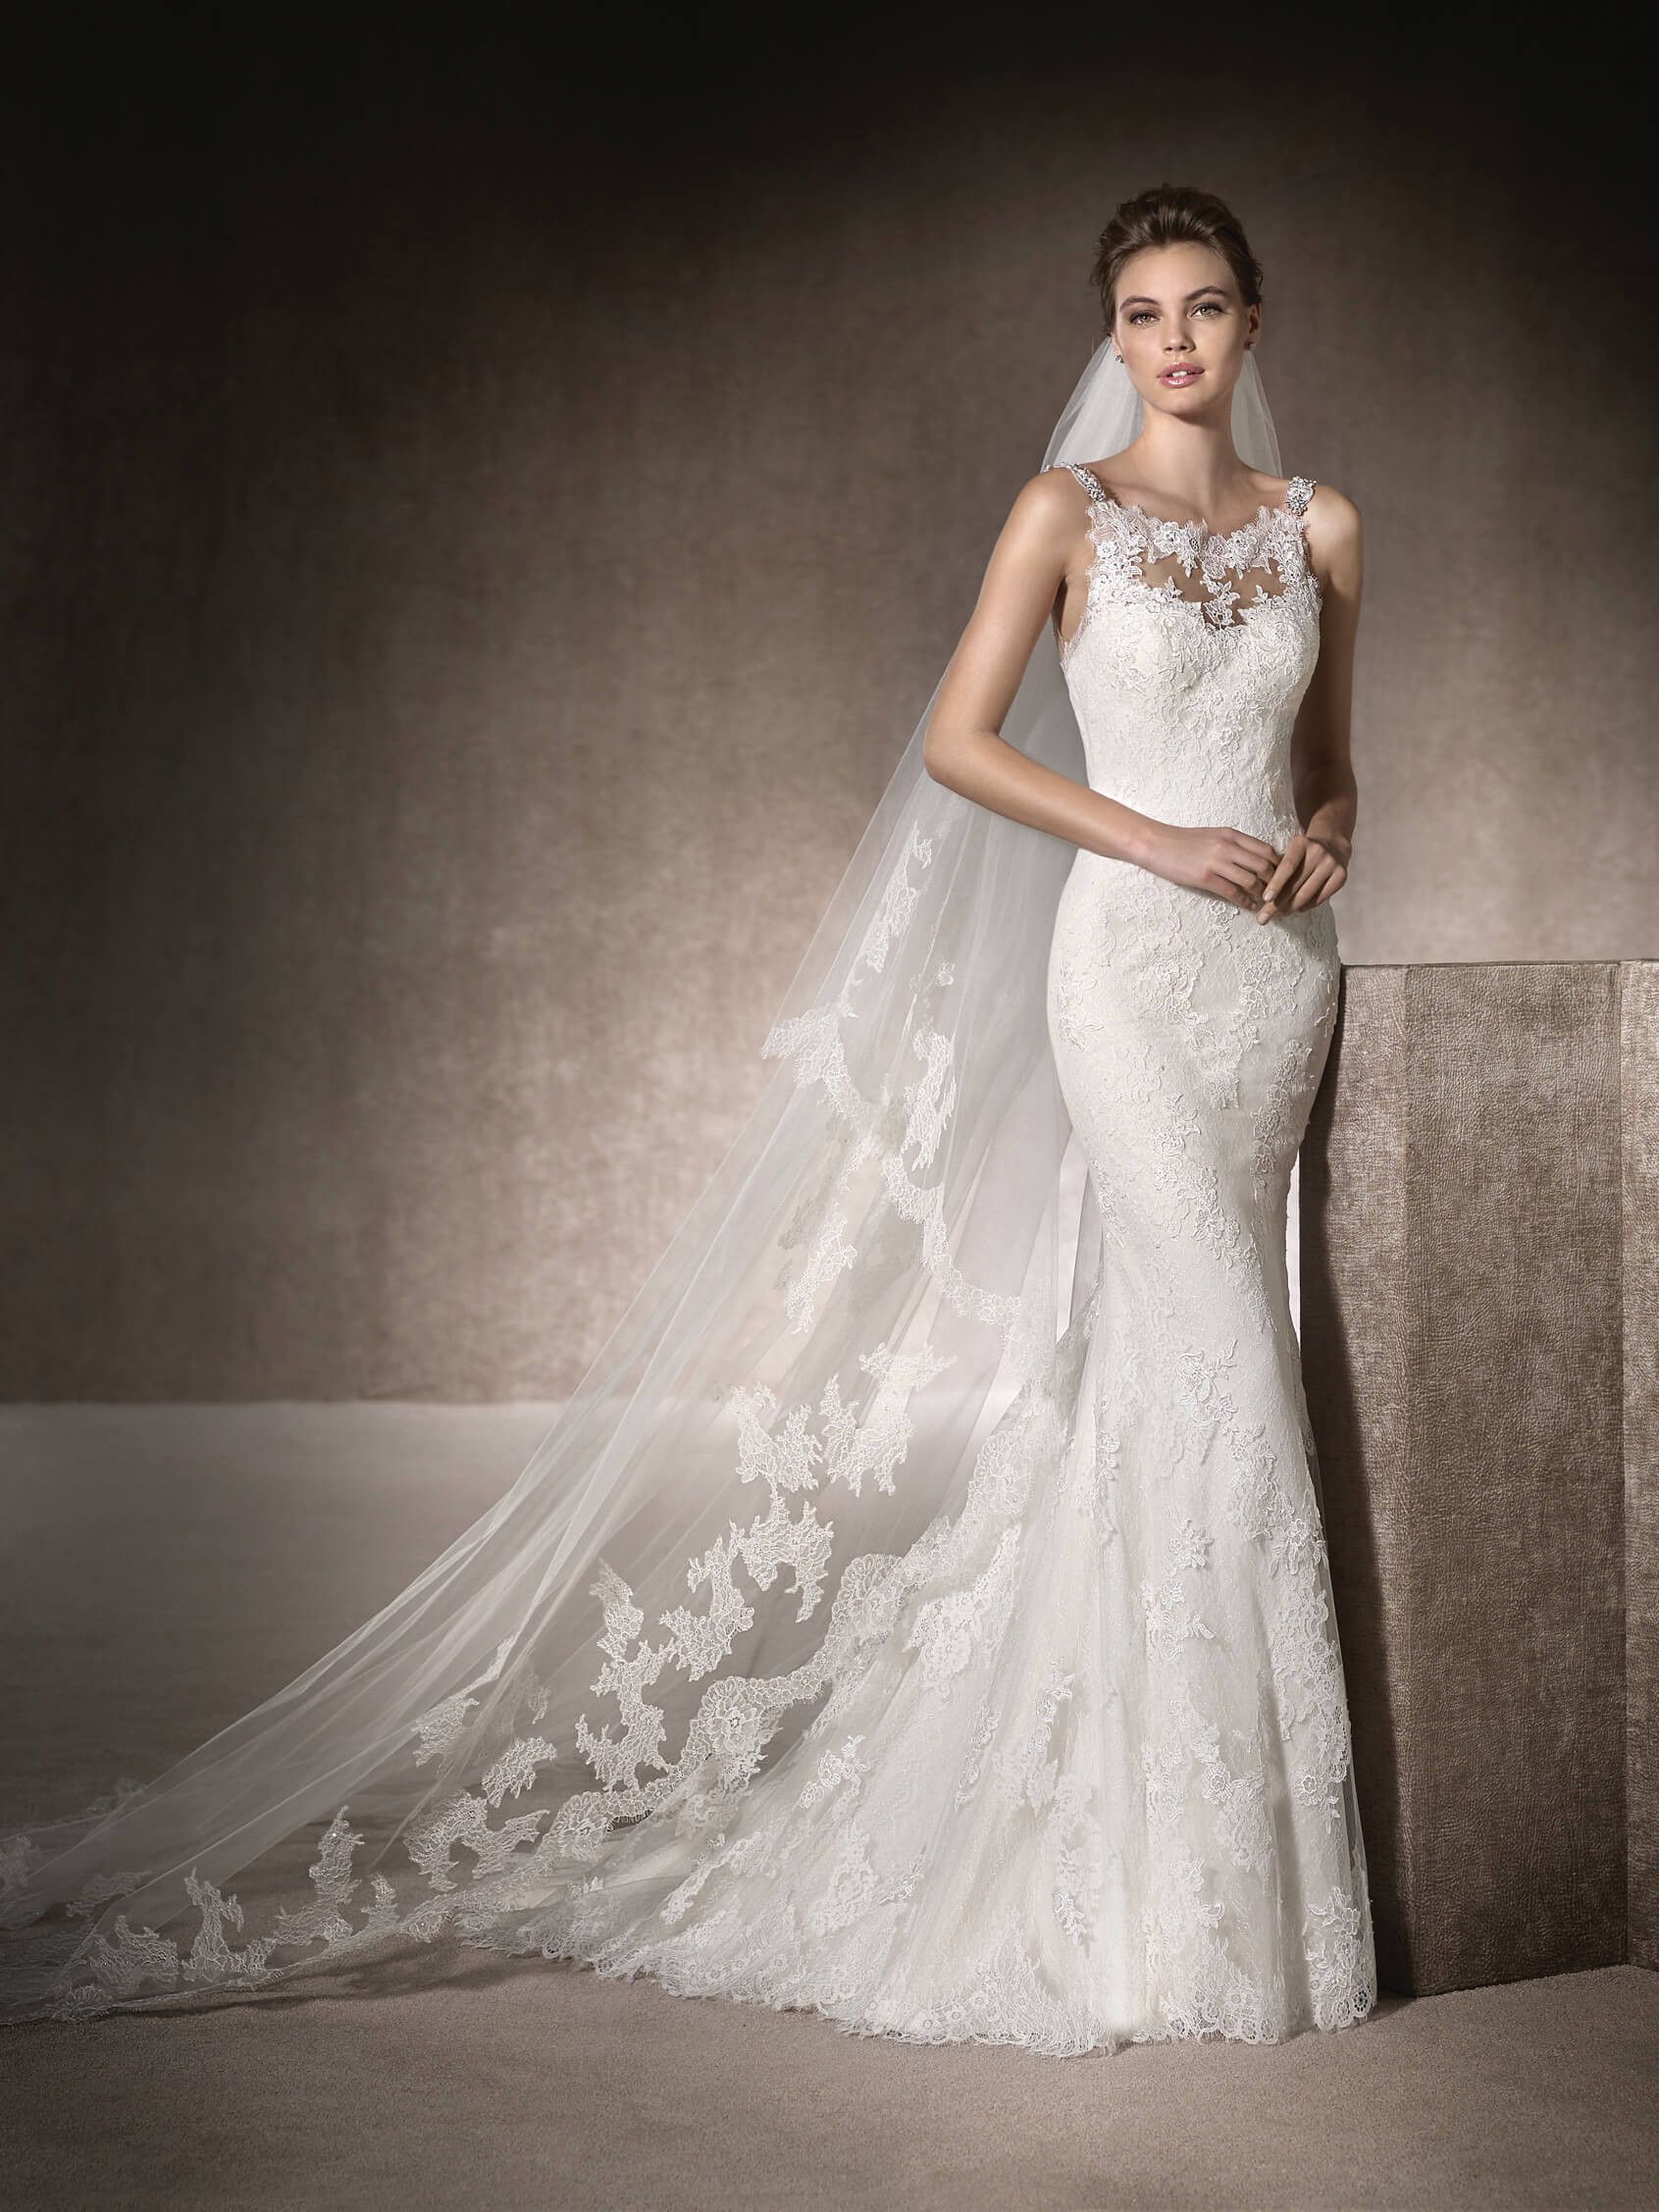 MARIA delights with its gemstone straps and back. This mermaid wedding dress has a round neckline and is made of tulle, lace, Chantilly and guipure